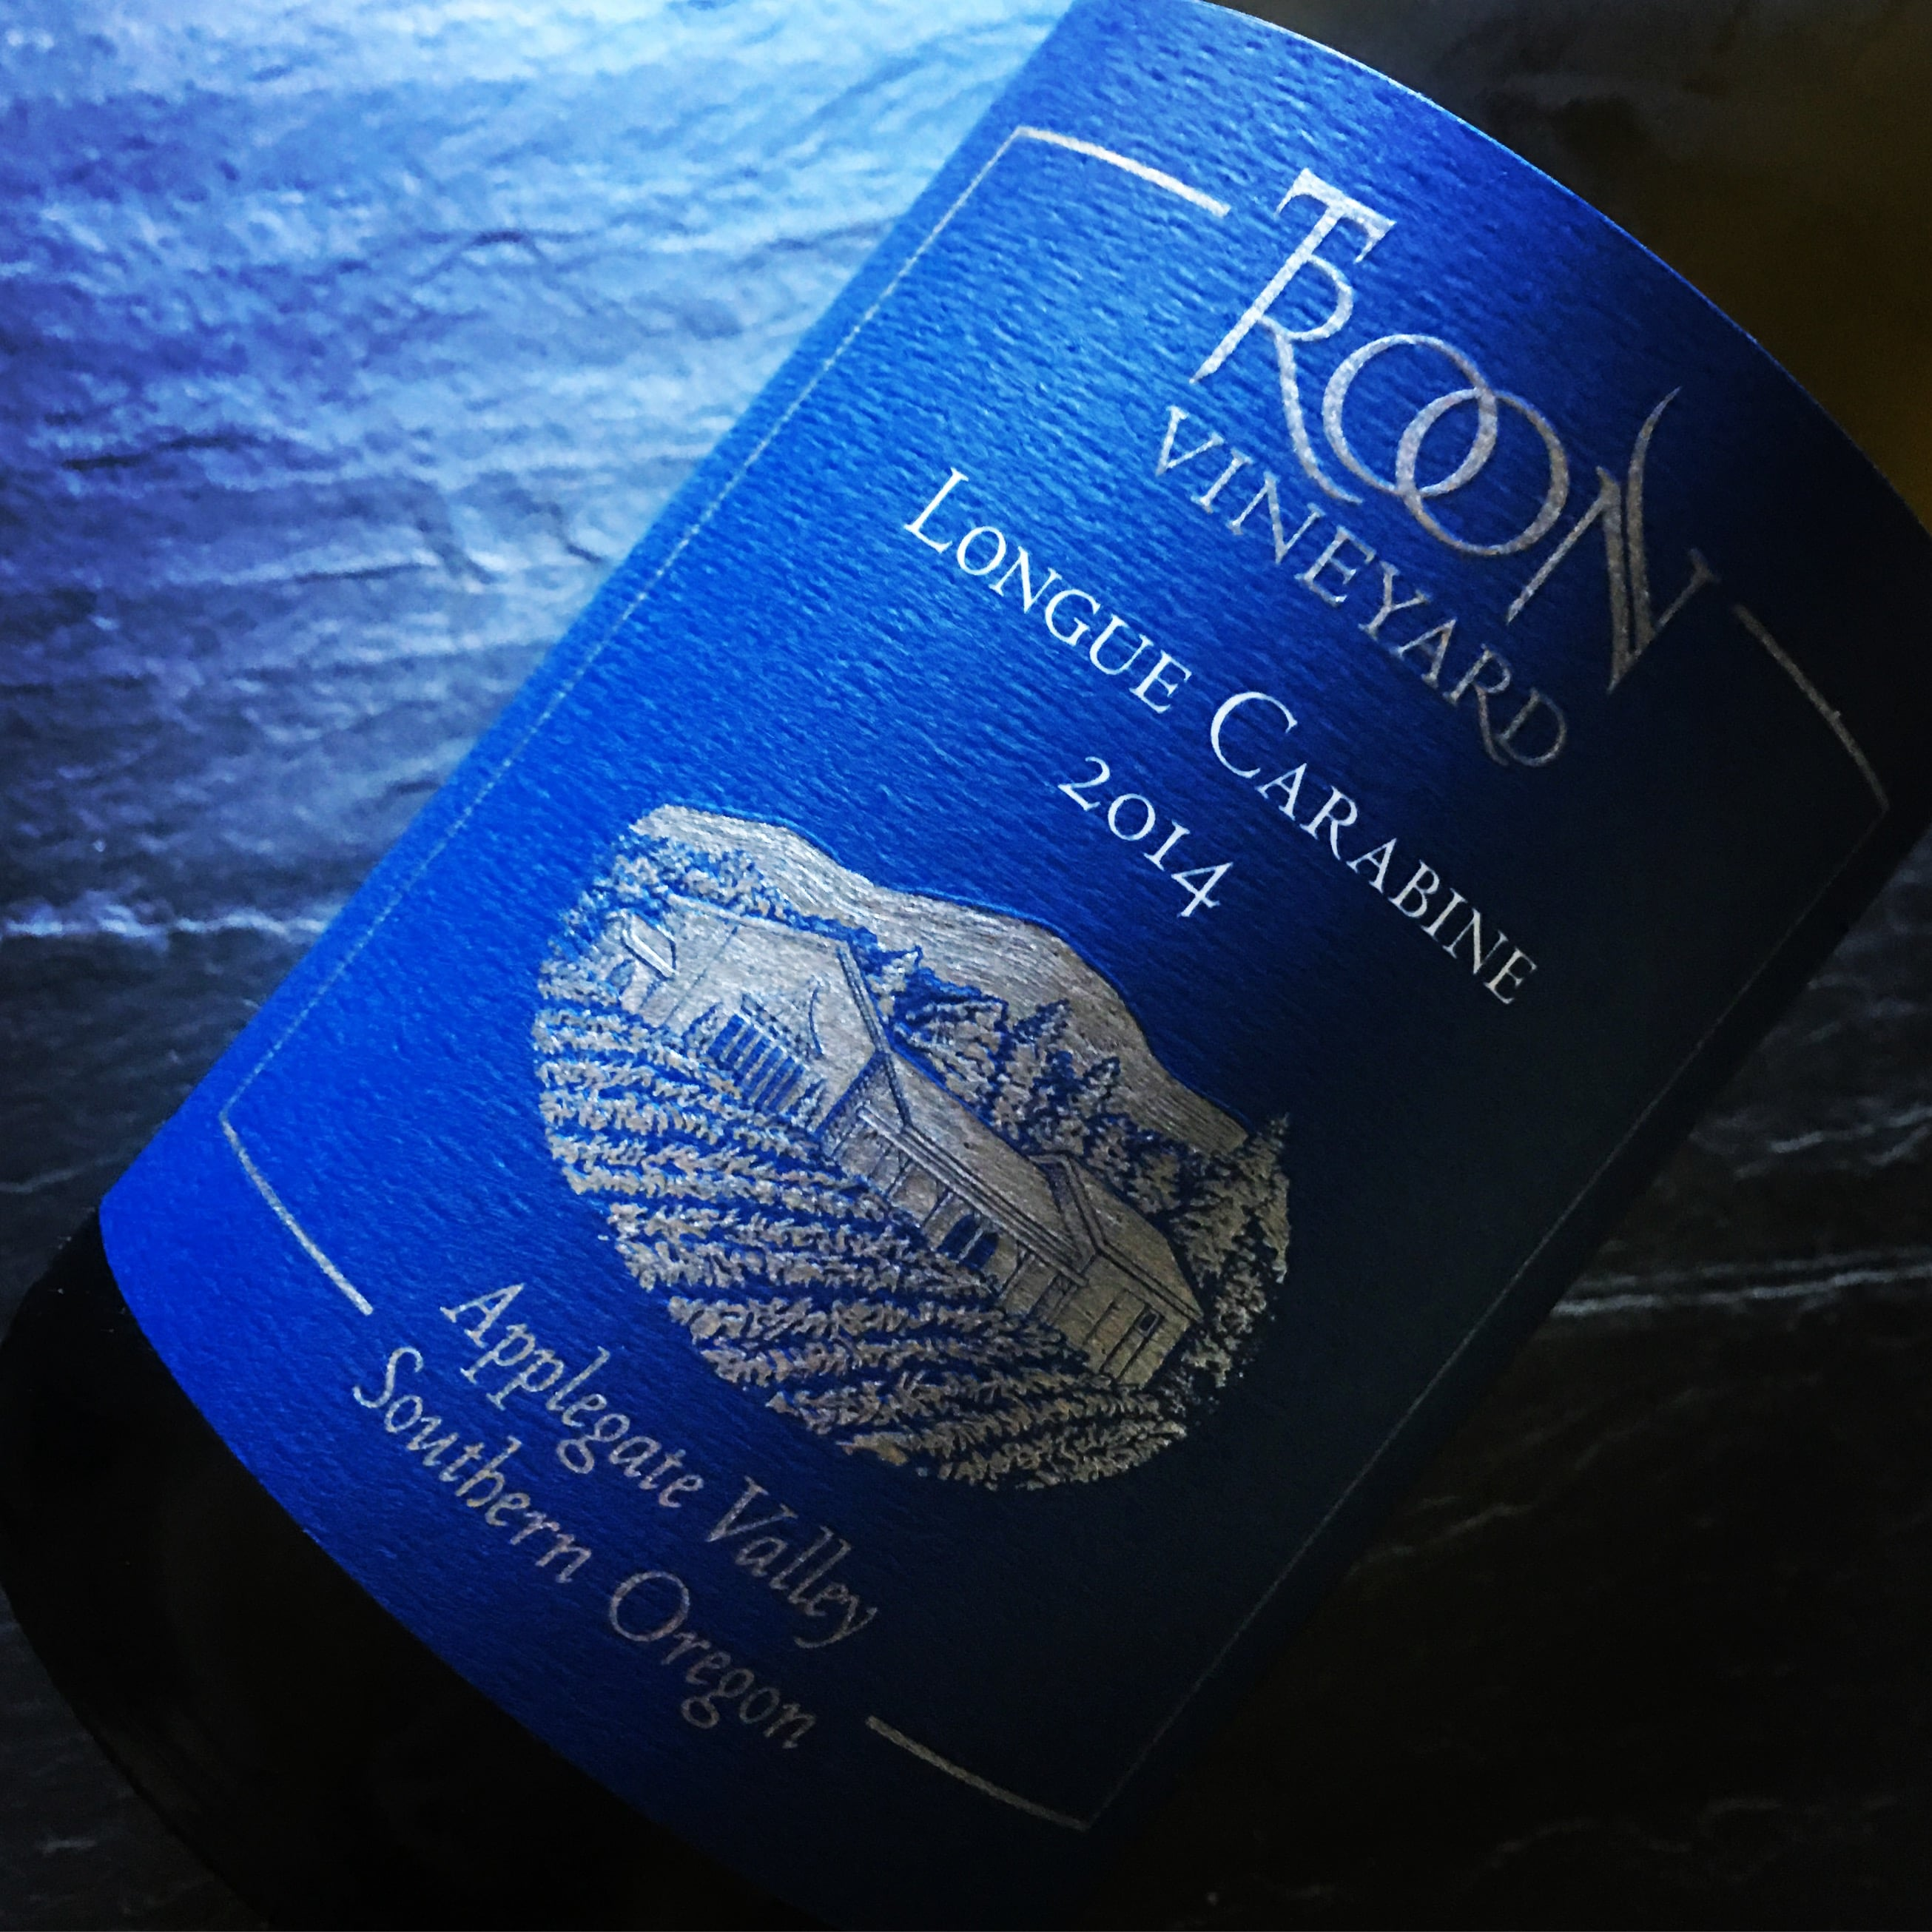 Troon Blue Label Longue Carabine 2014